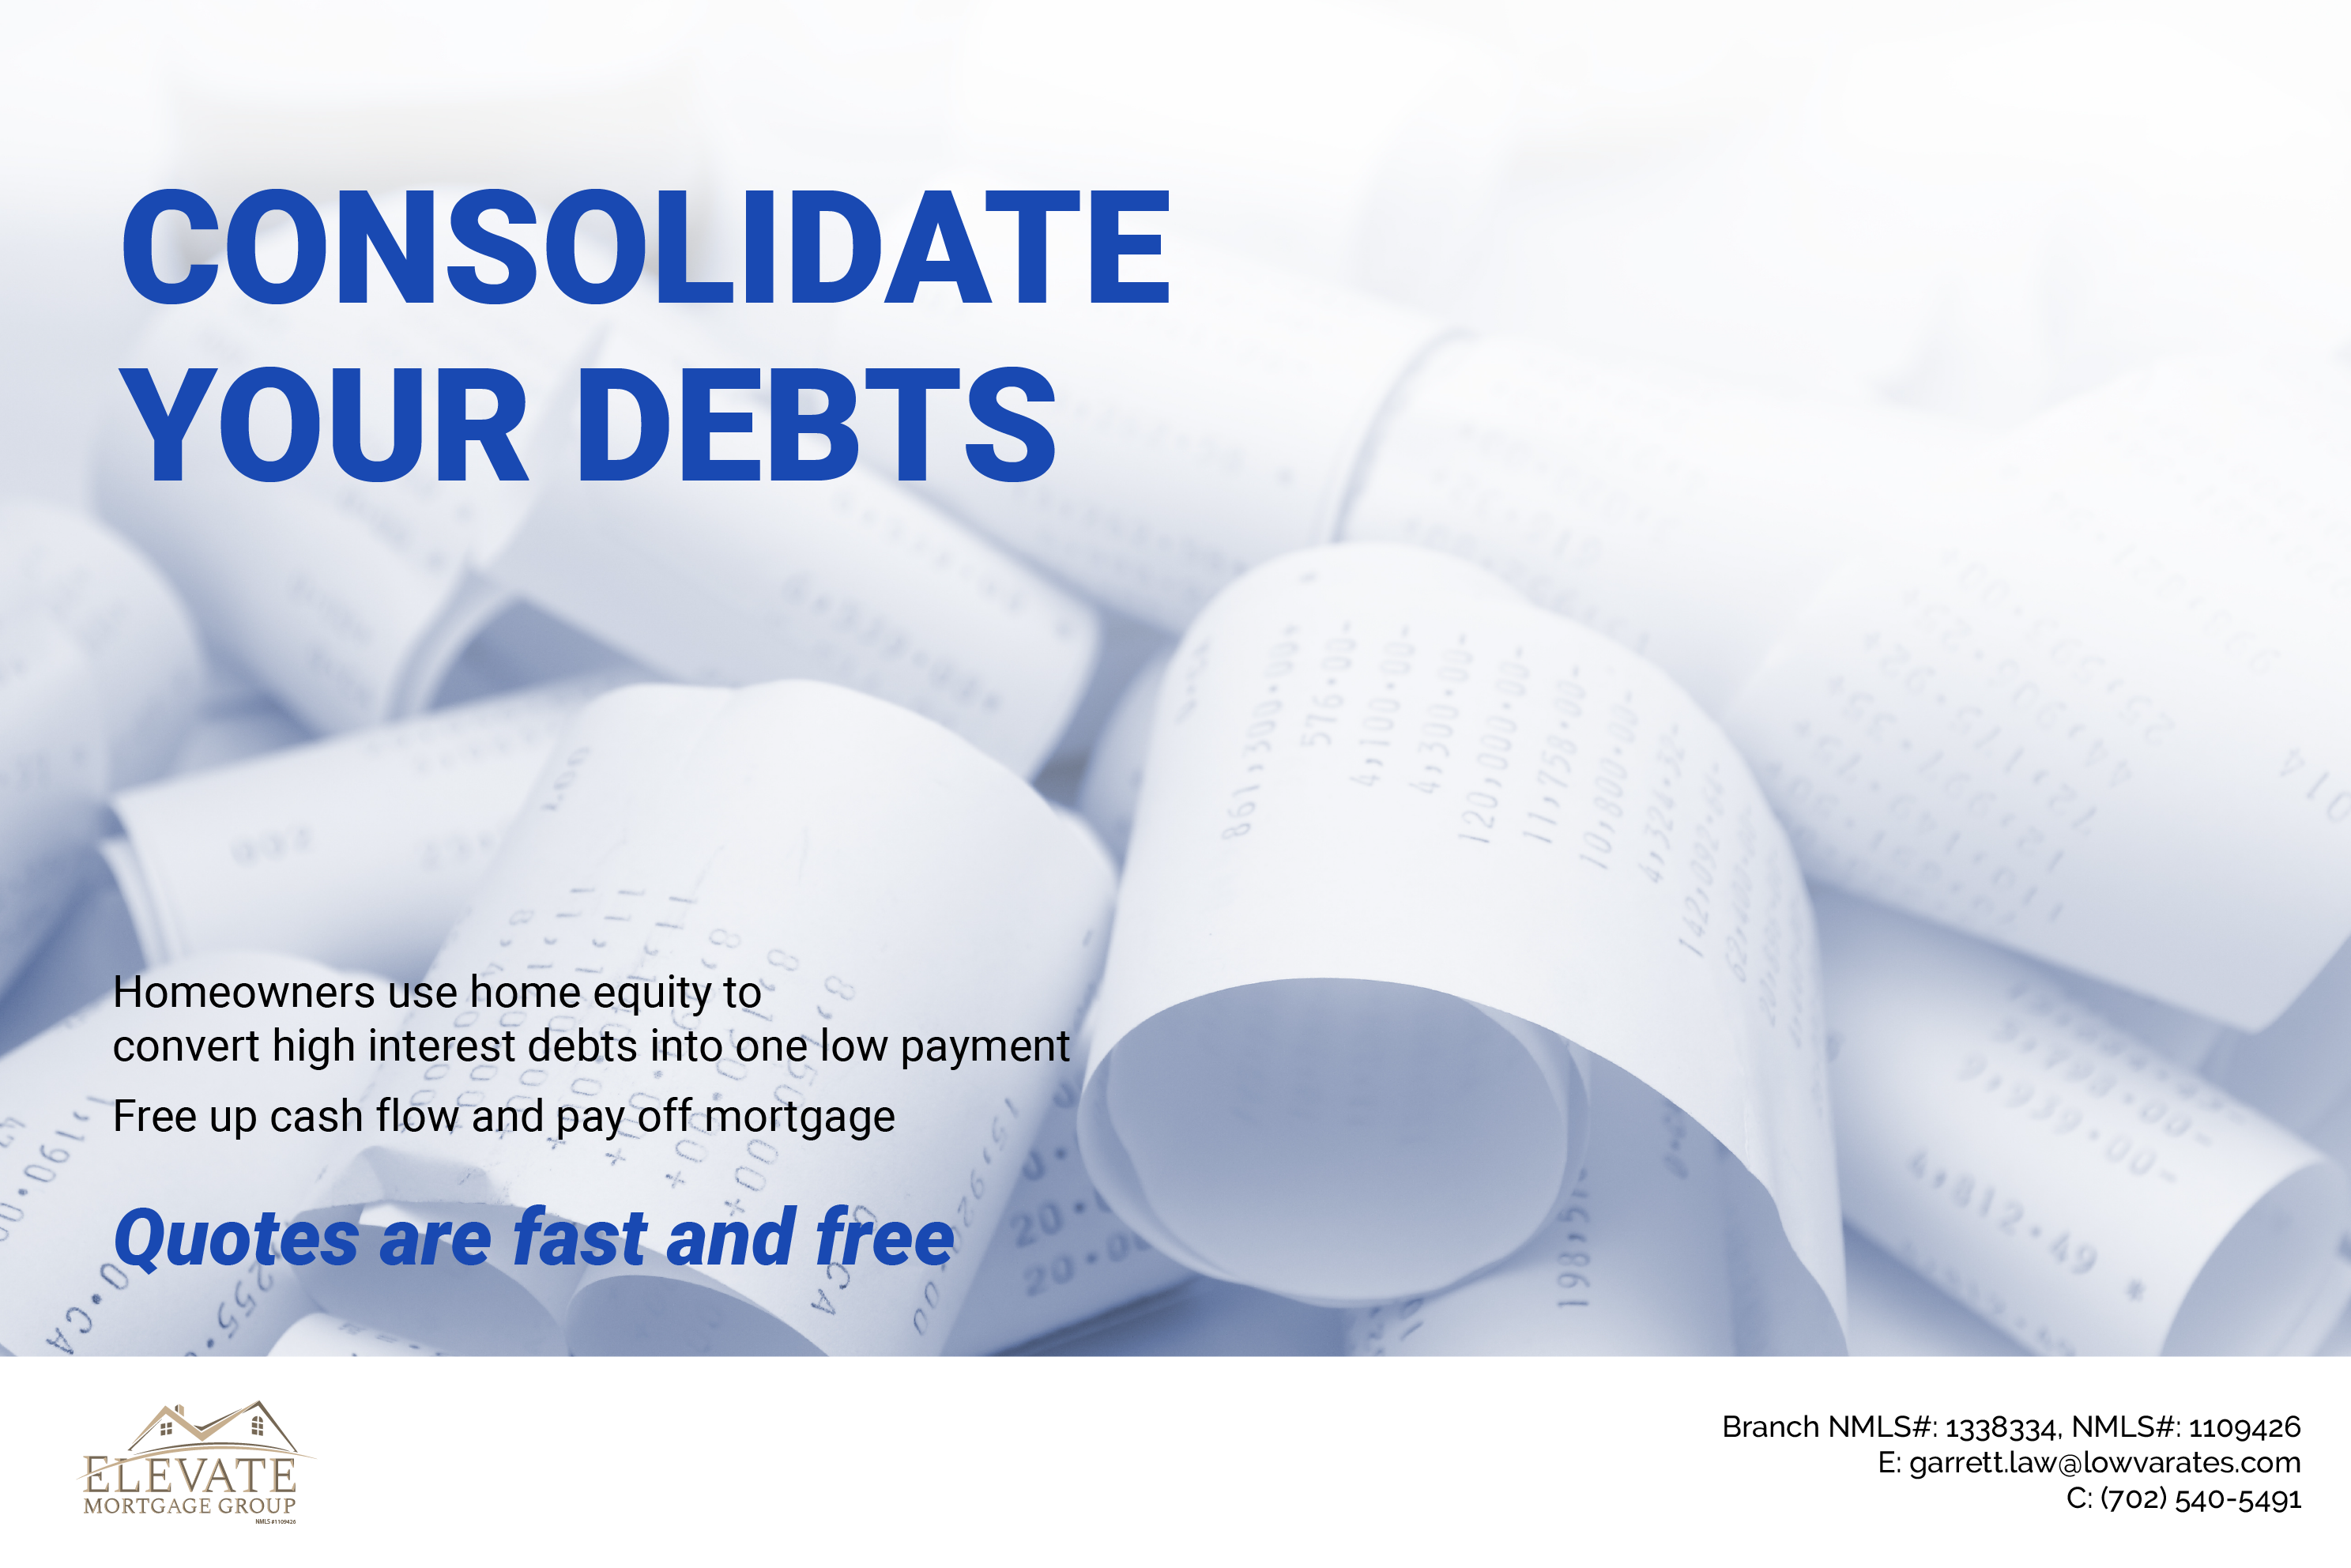 consolidate_your_debts_marketing-01.png (3.37 MB)